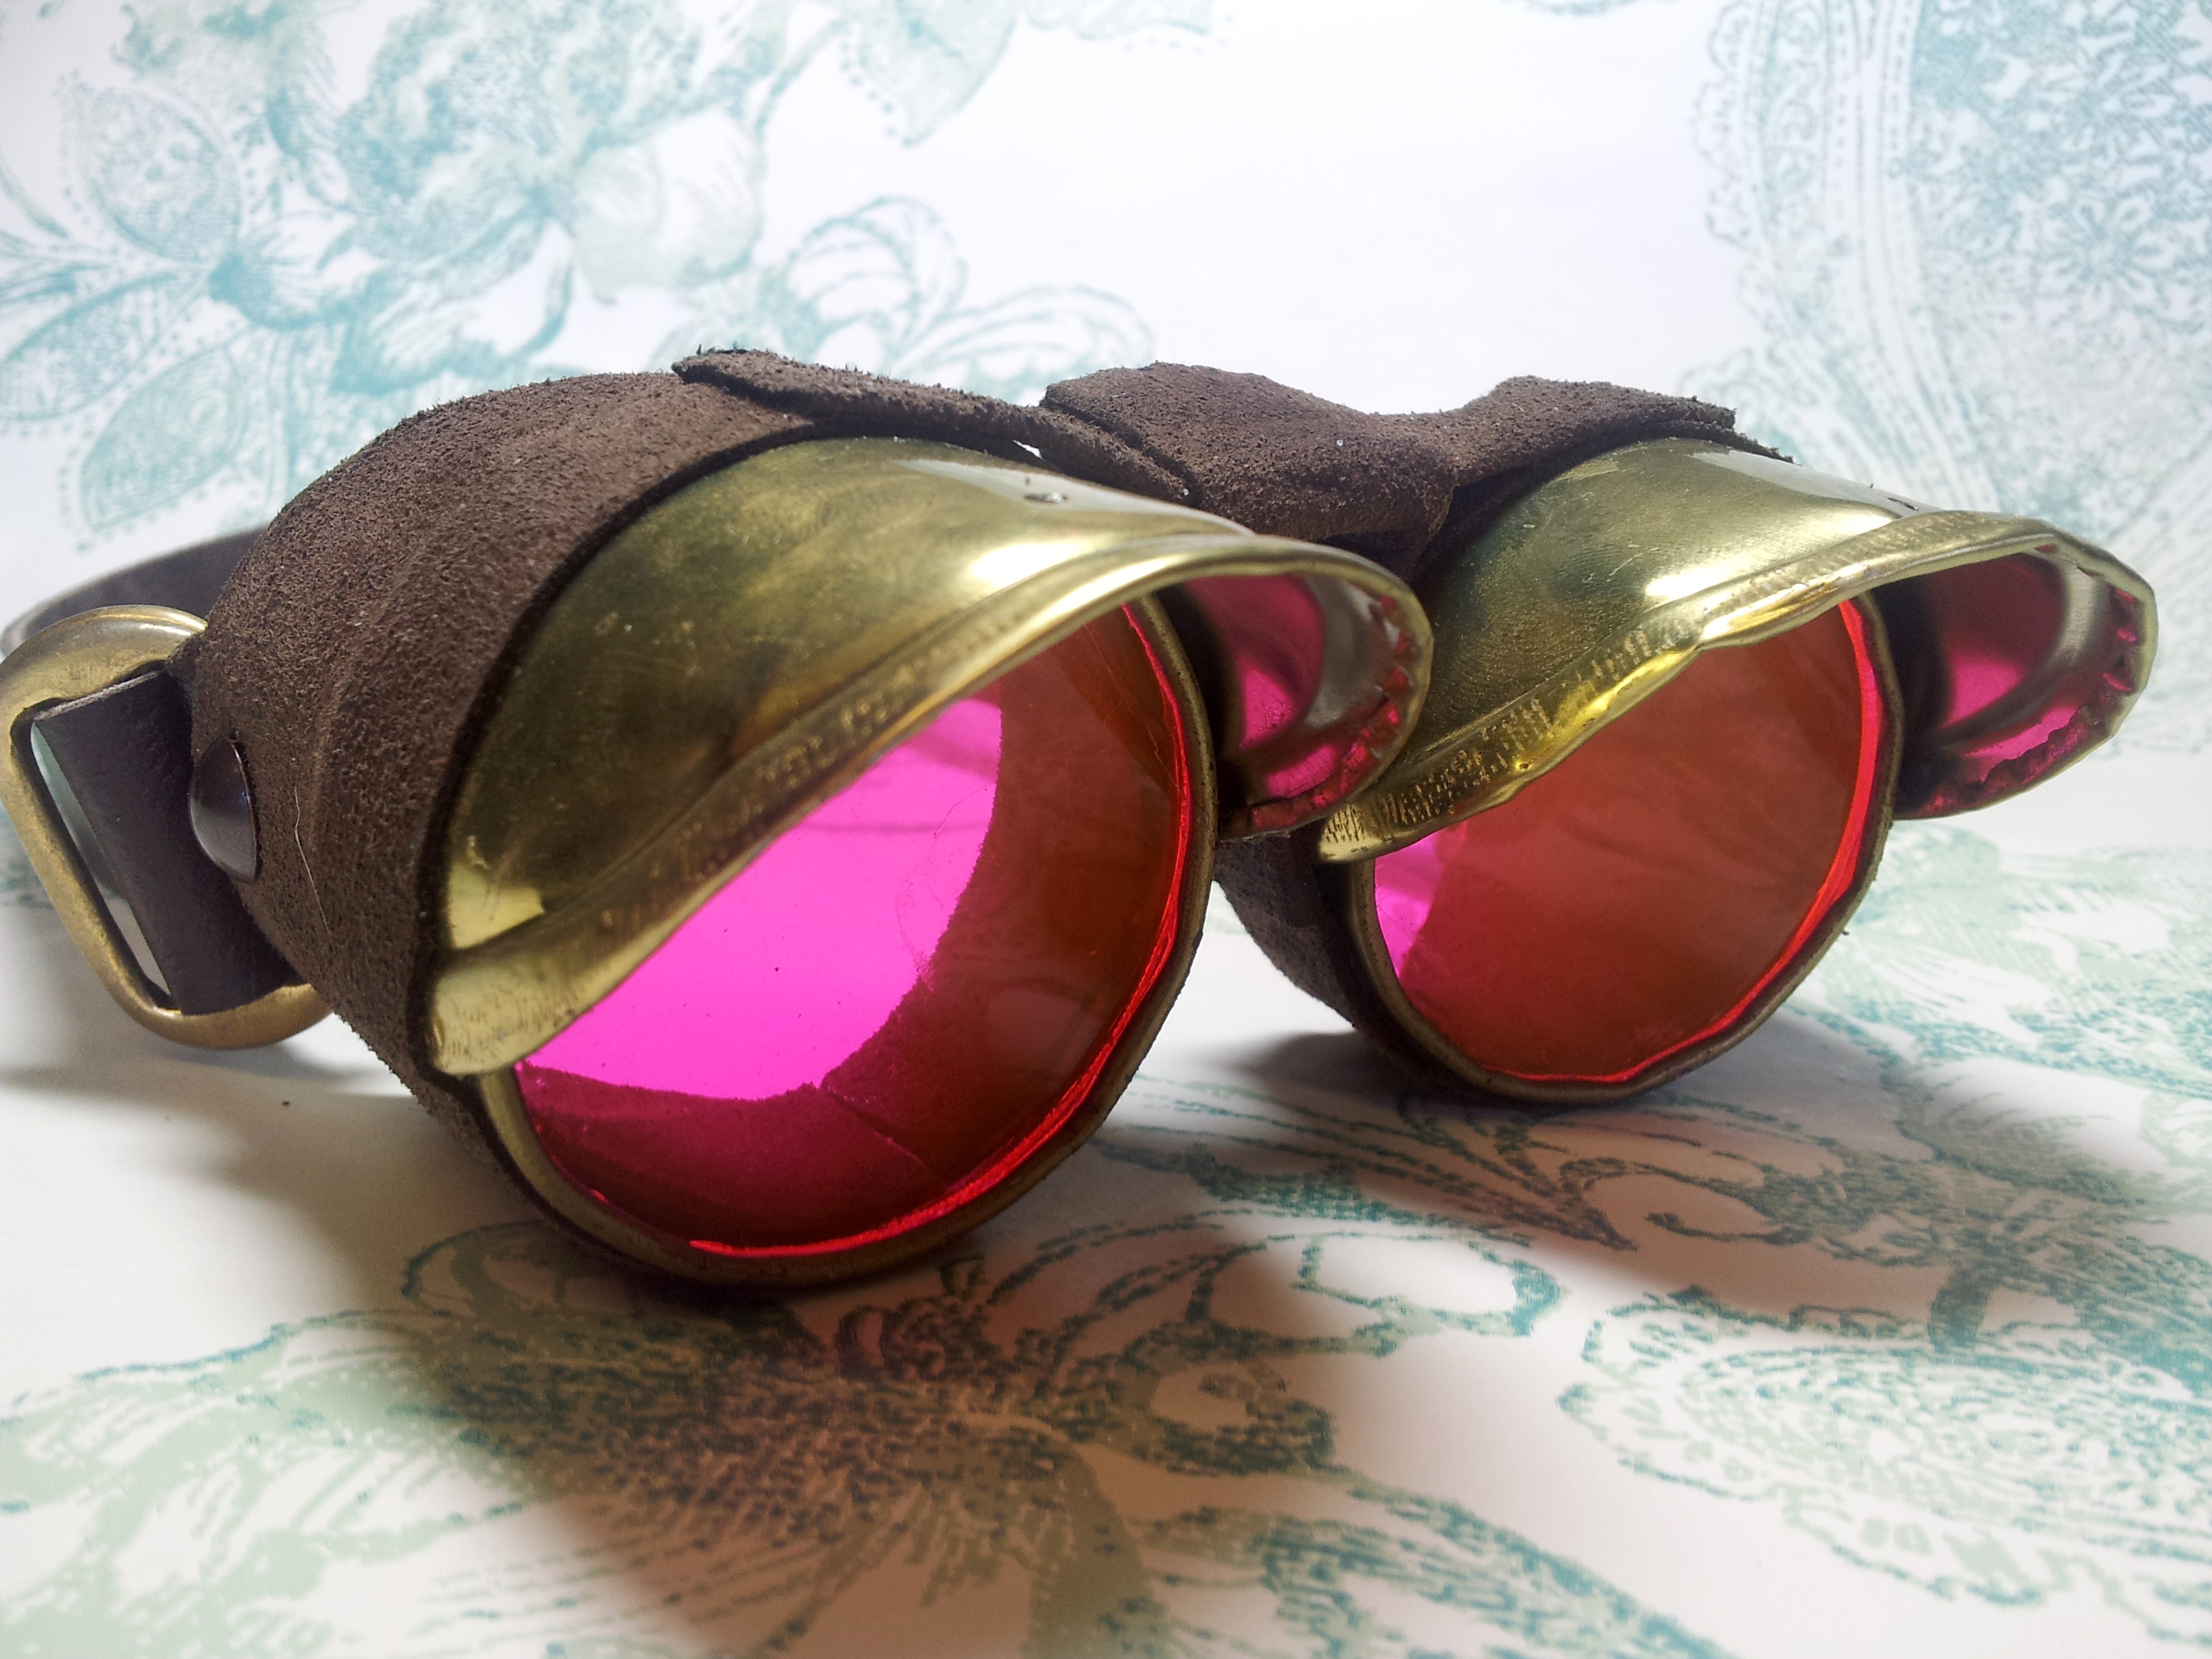 Pixie Tracer Goggles